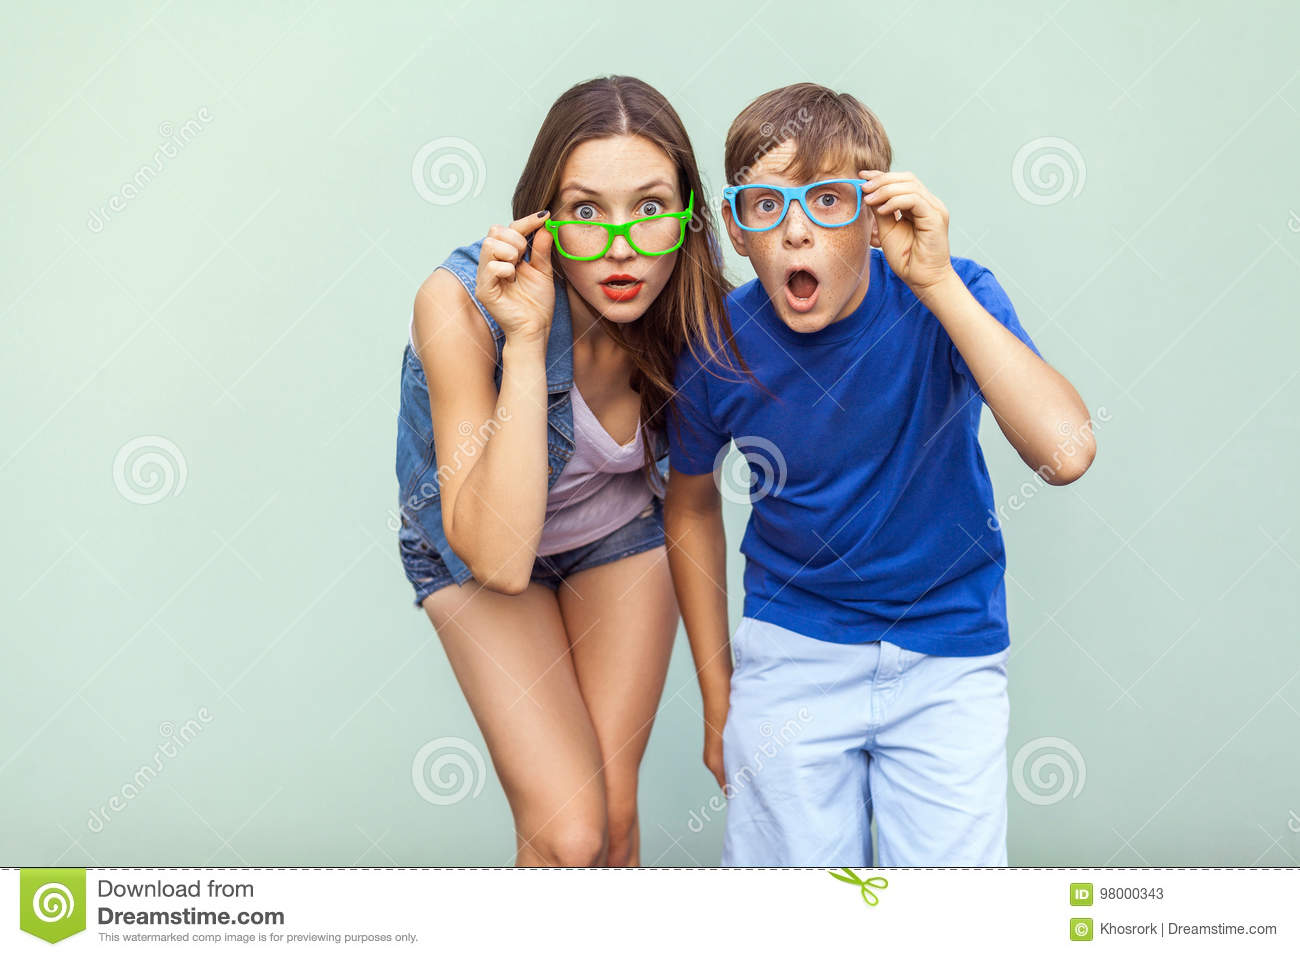 Eyewear concept. WOW faces. Young sister and brother with freckles on their faces, wearing trendy glasses, posing over light green